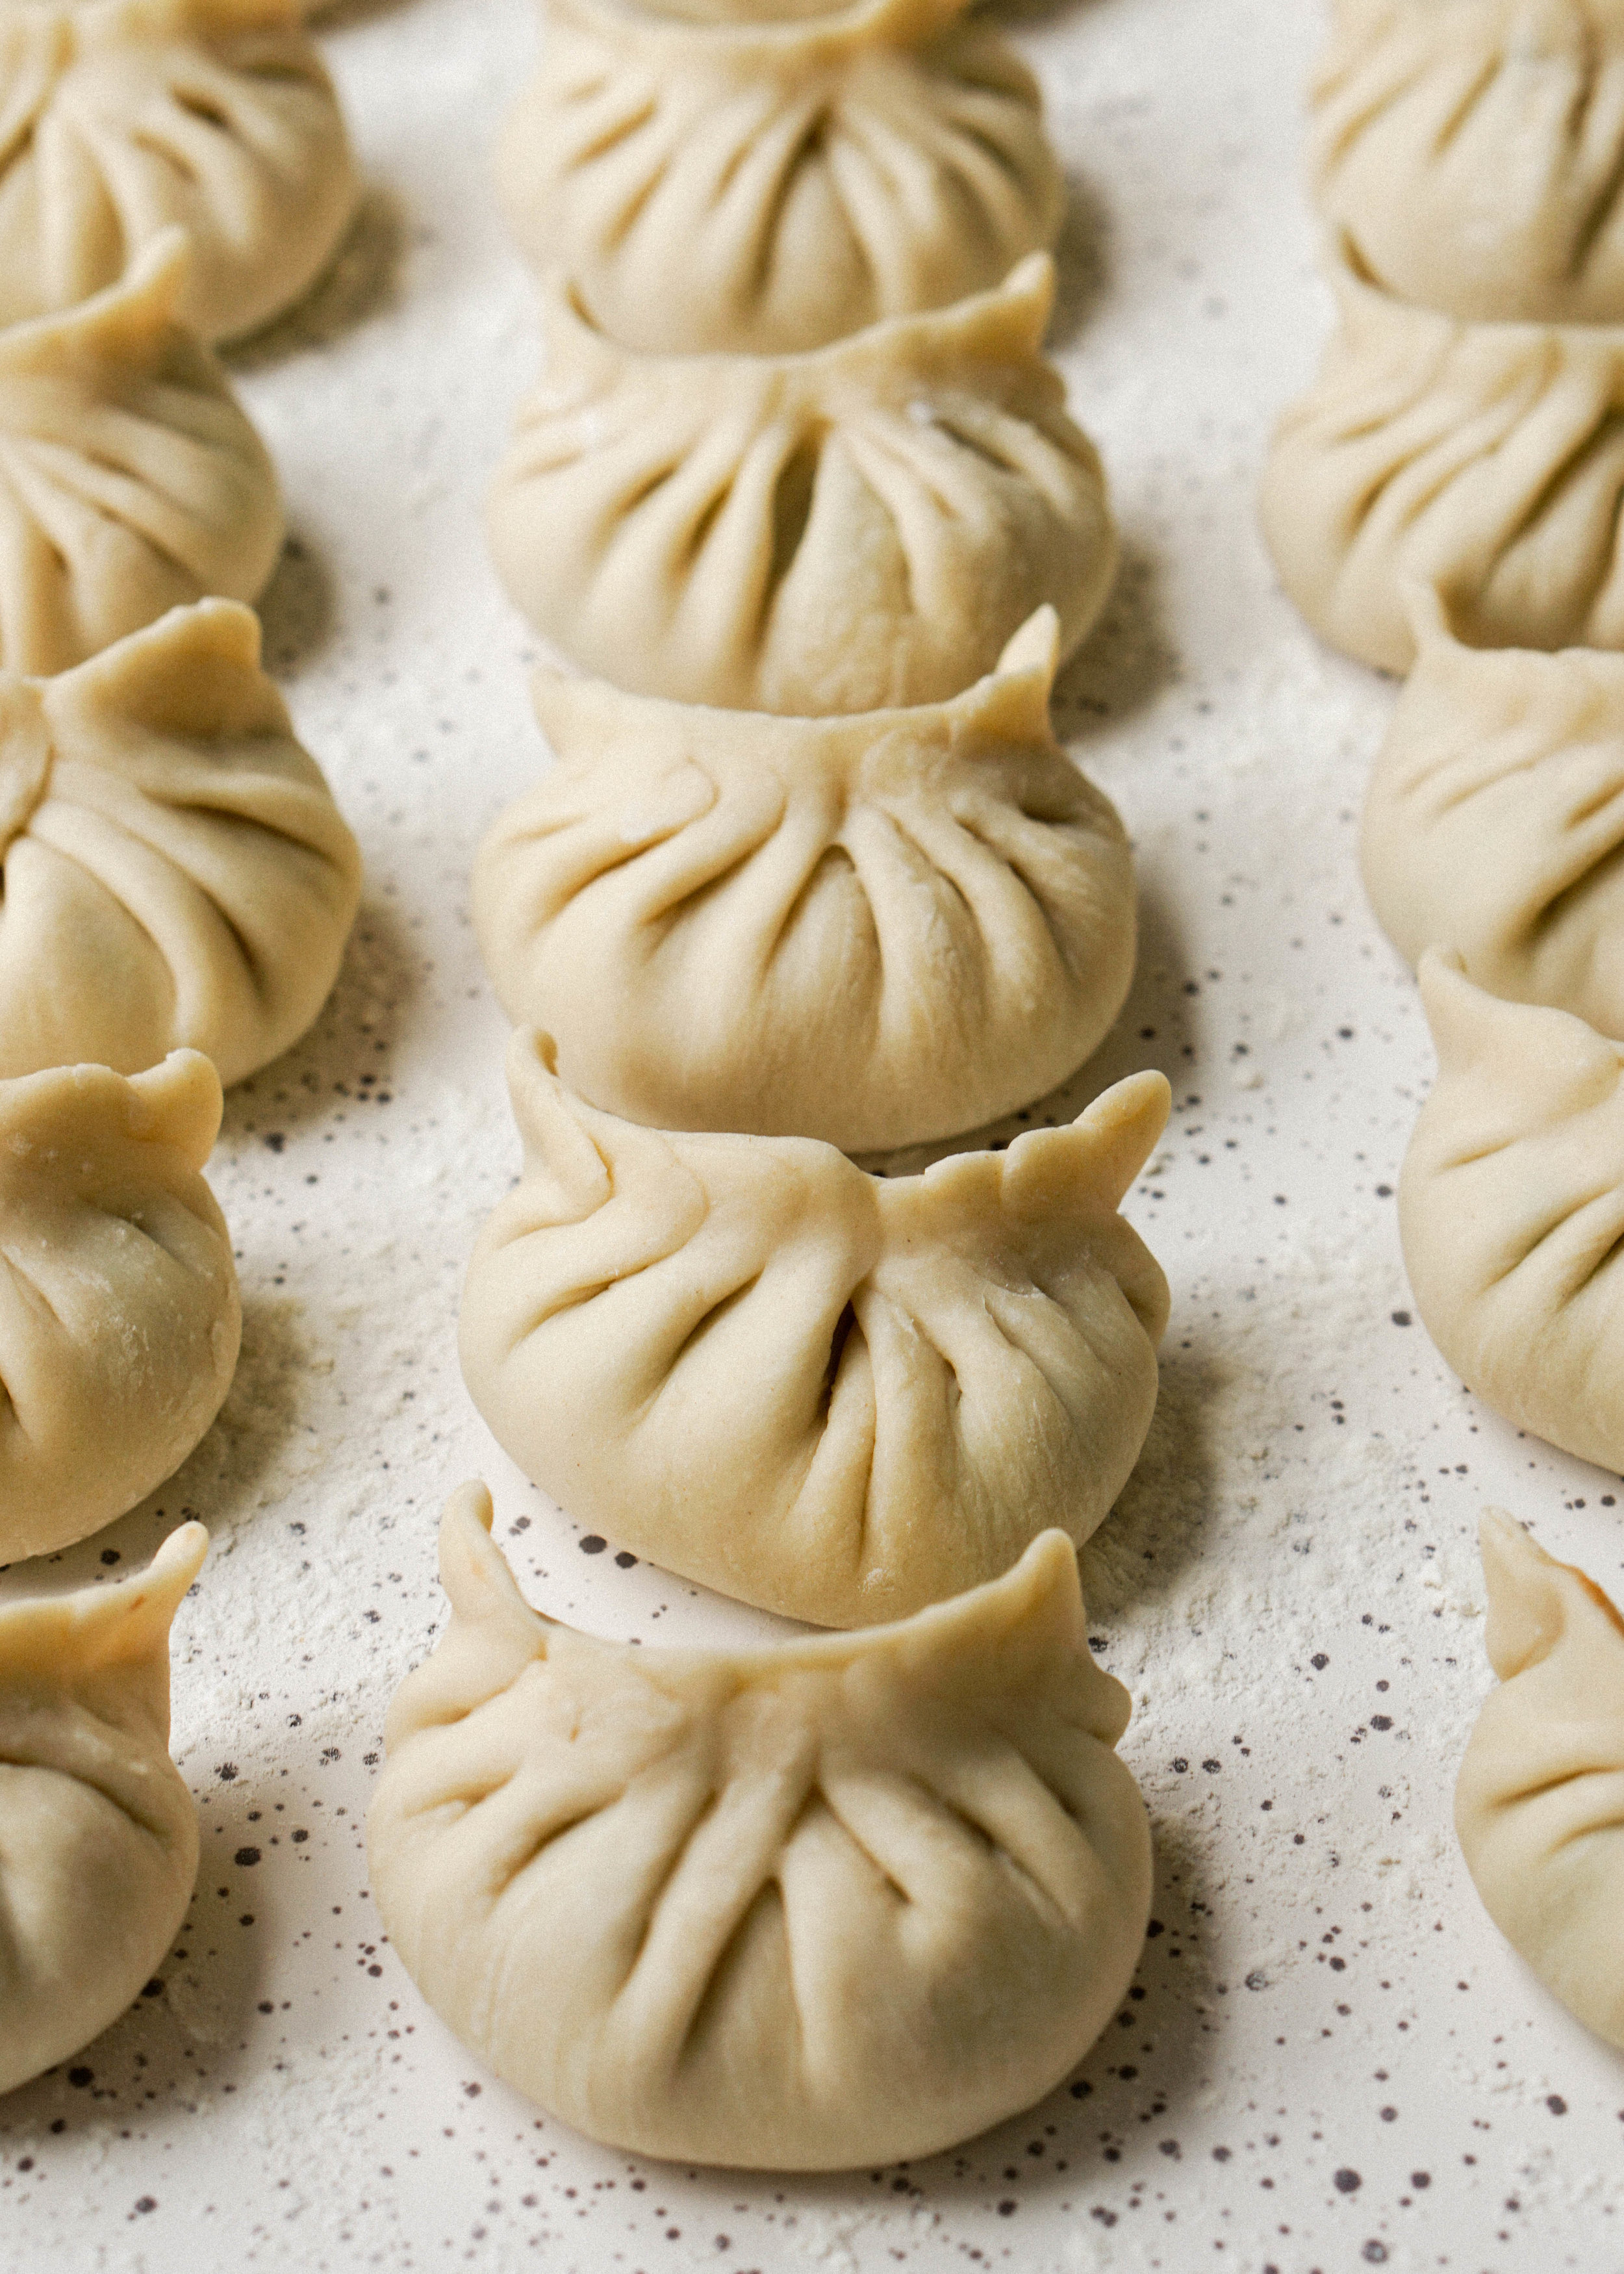 Private Dumpling Workshops - Food has a magical way of bringing people together. It allows us to connect over a shared love of food, learning, and community. One of my greatest joys is sharing my recipes, techniques, and stories with all of you!